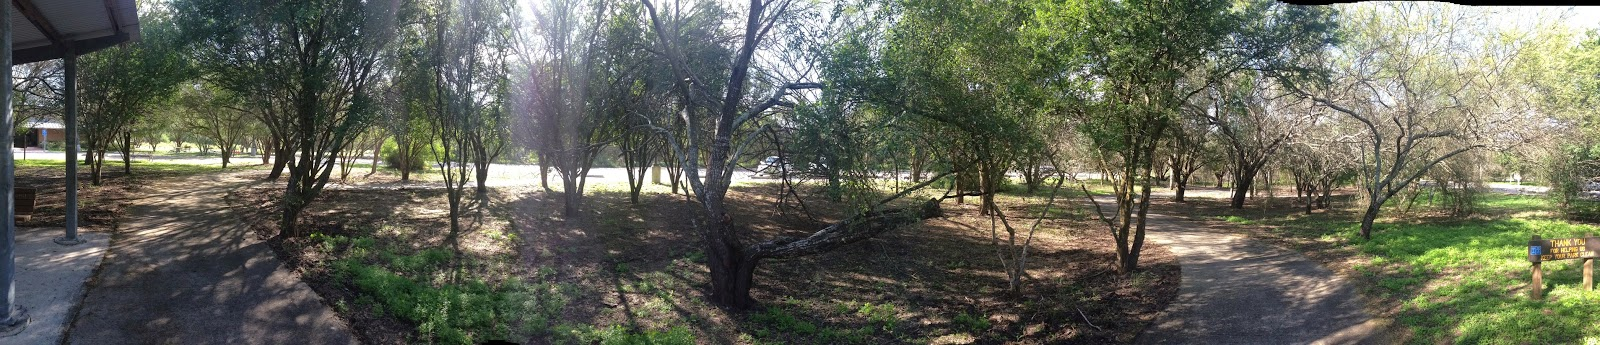 The parking/picnic area at Resaca de la Palma State Park, Brownsville, TX